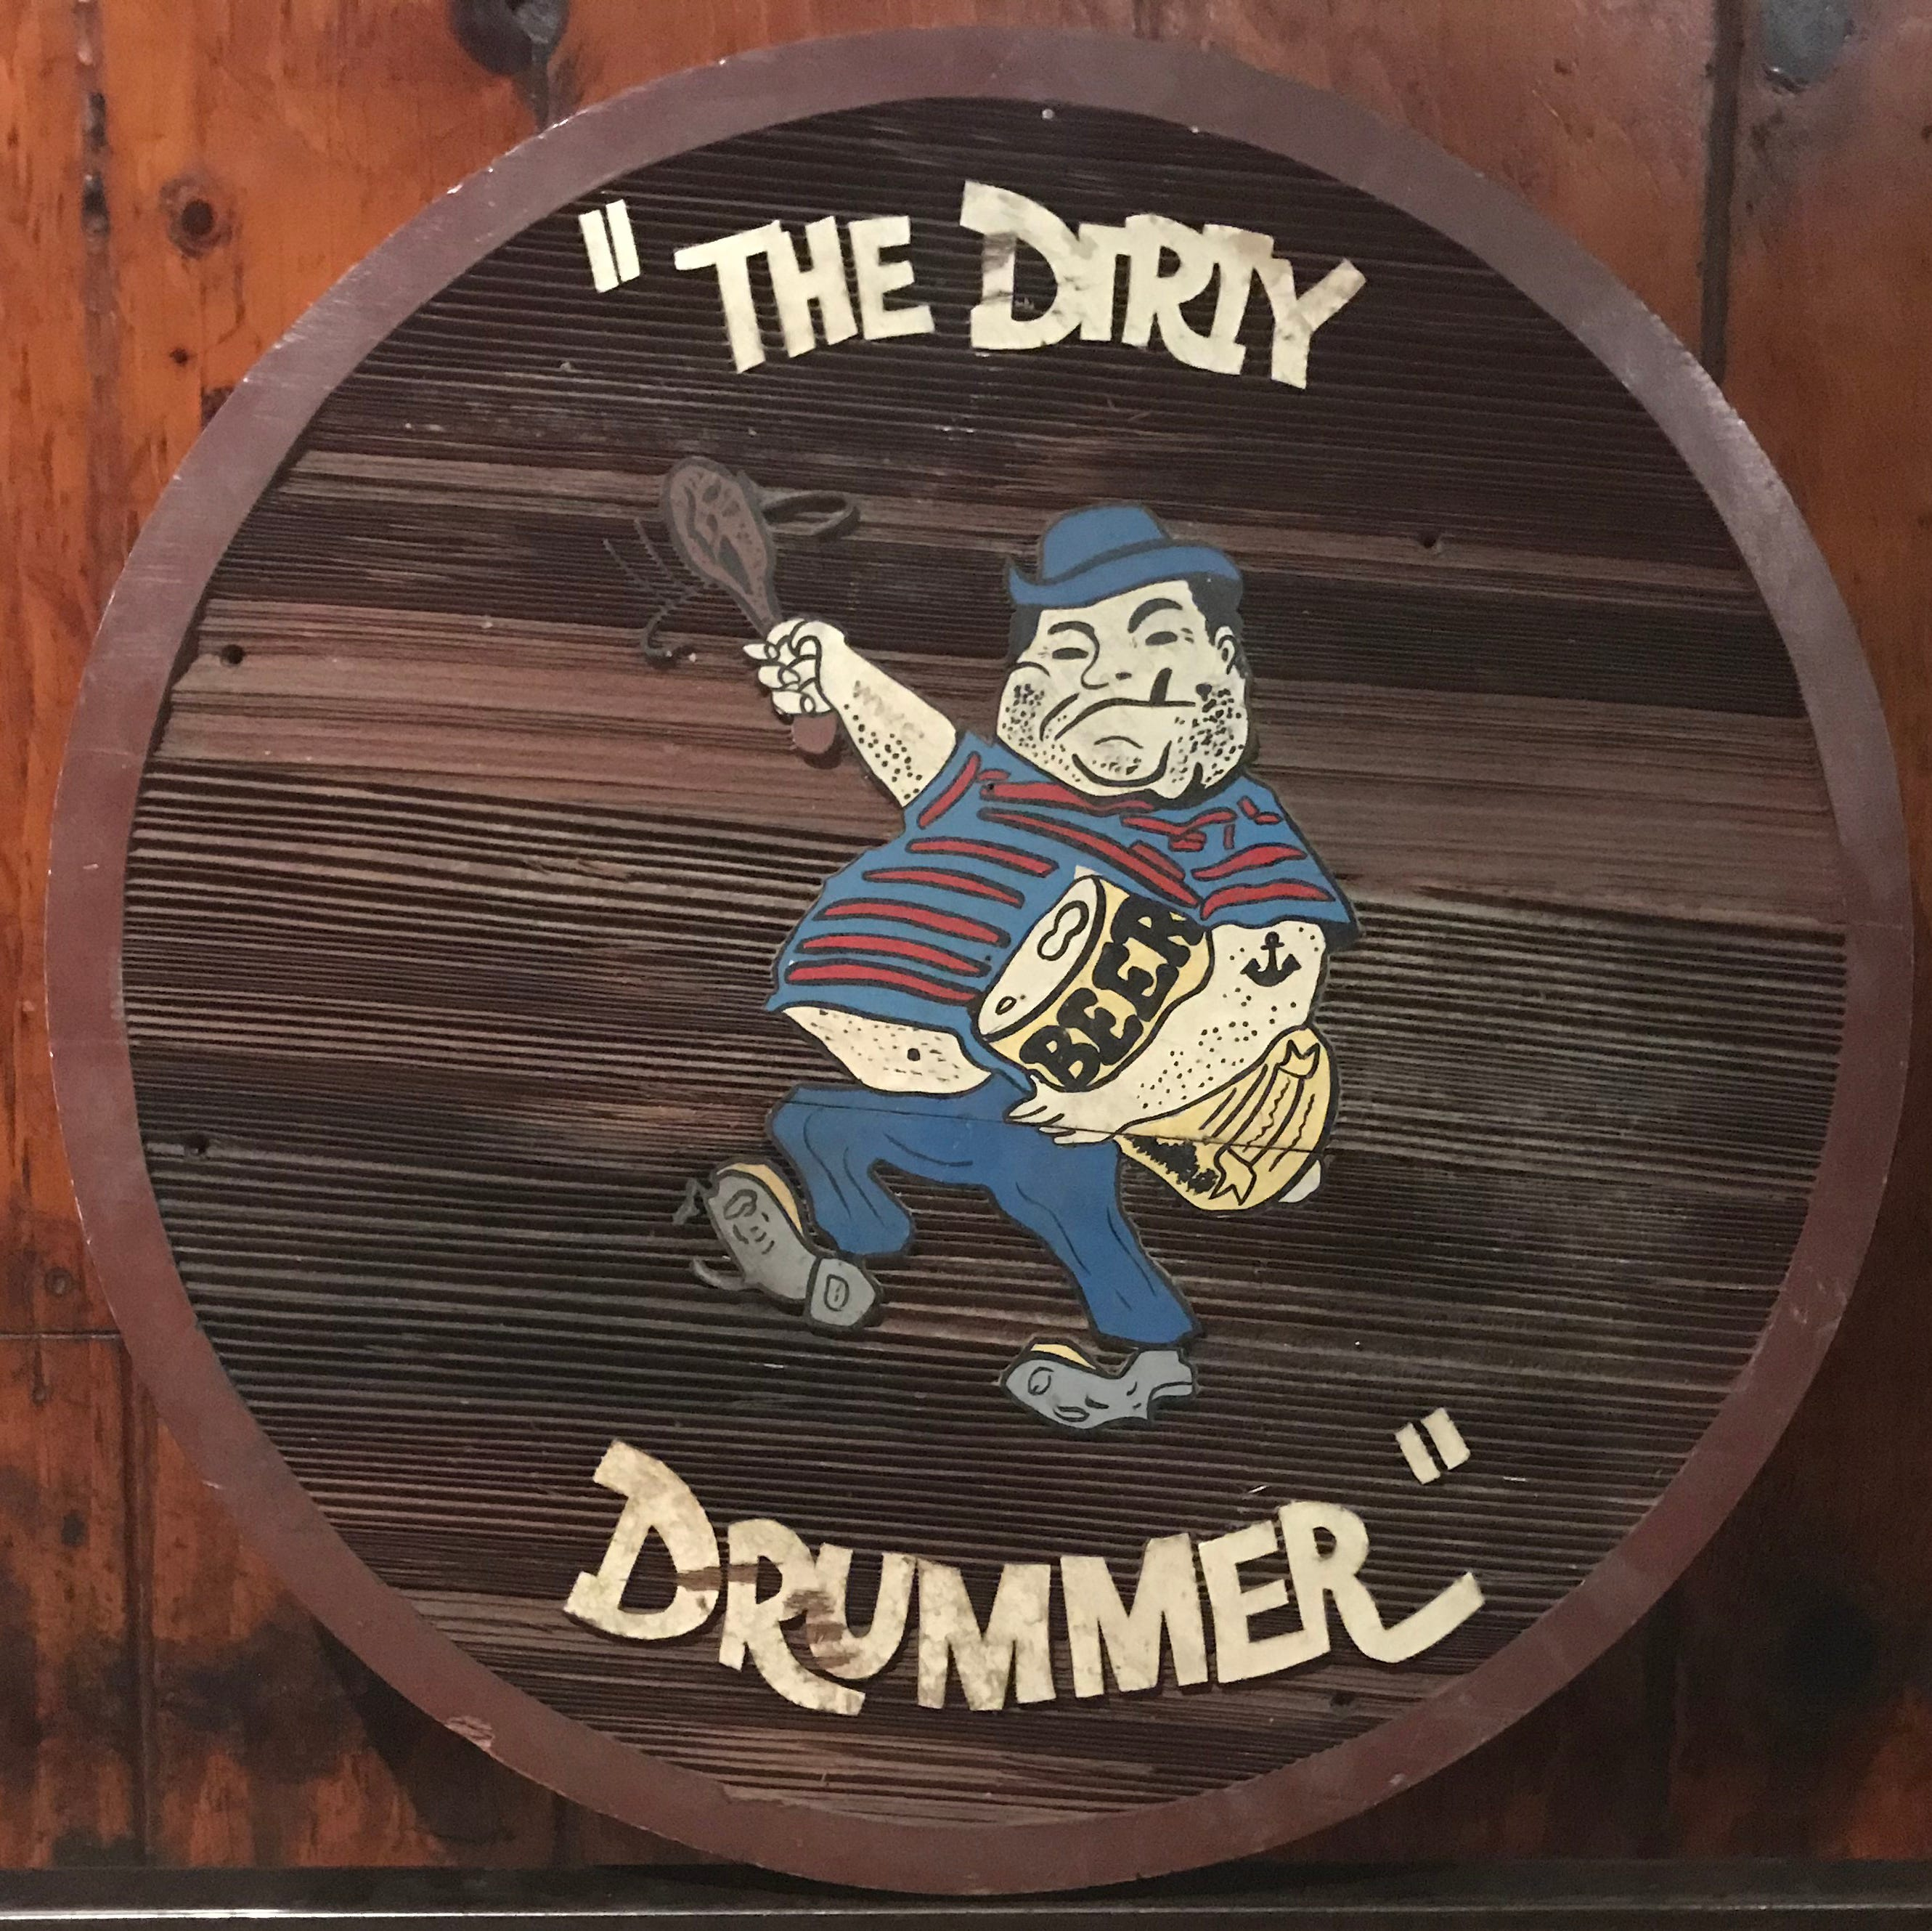 The beat goes on: Beloved Phoenix bar the Dirty Drummer to reopen